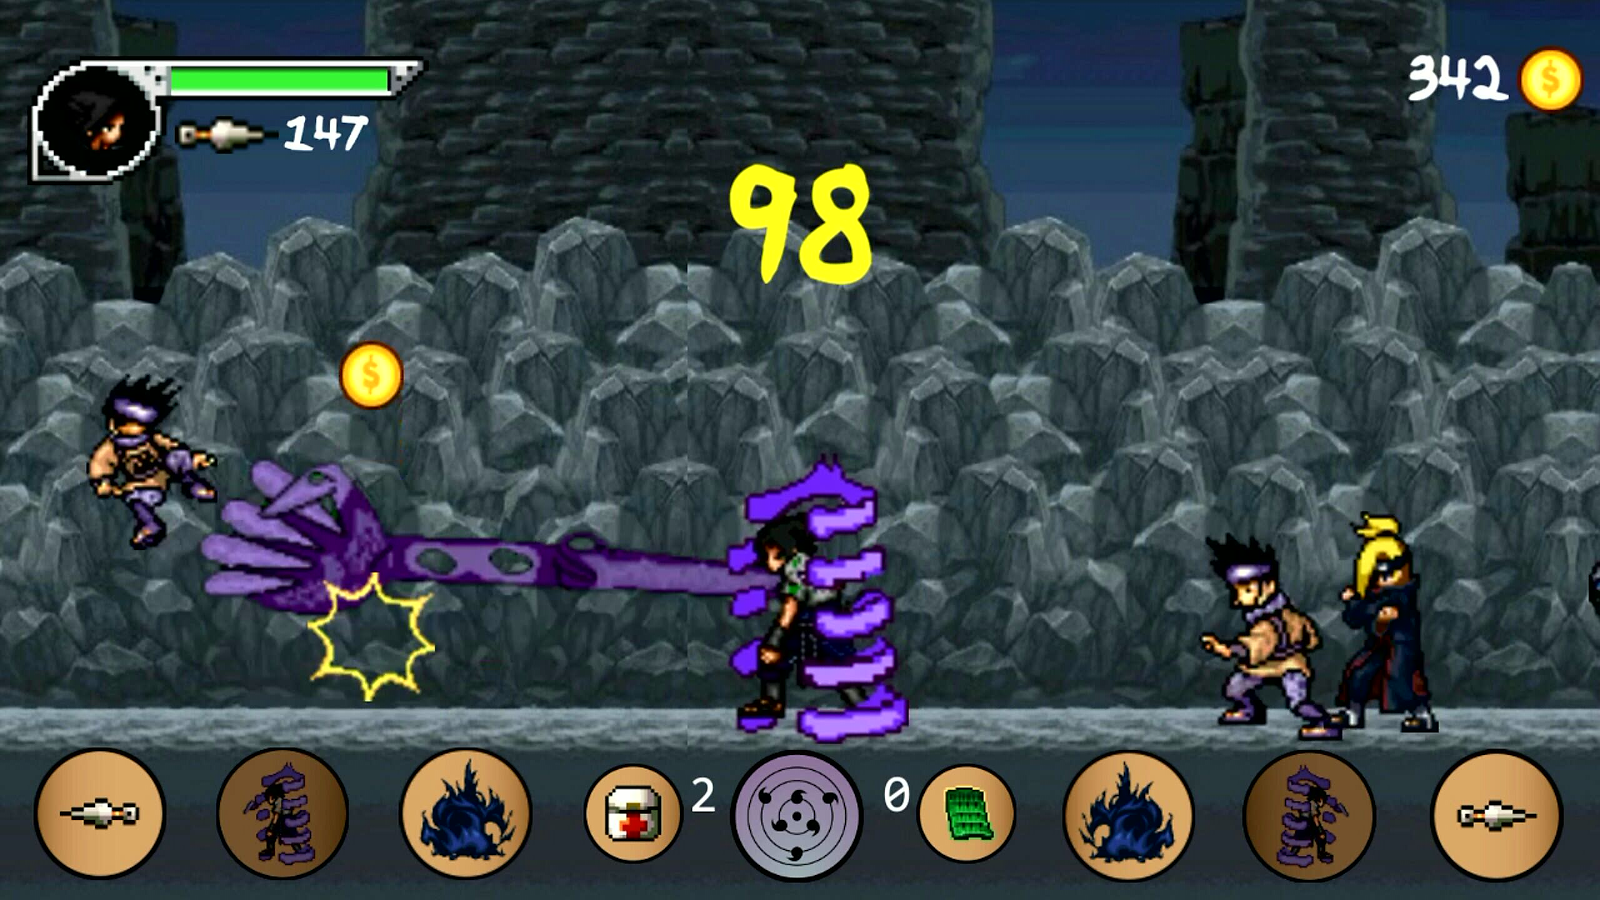 Battle of Ninja Screenshot 3